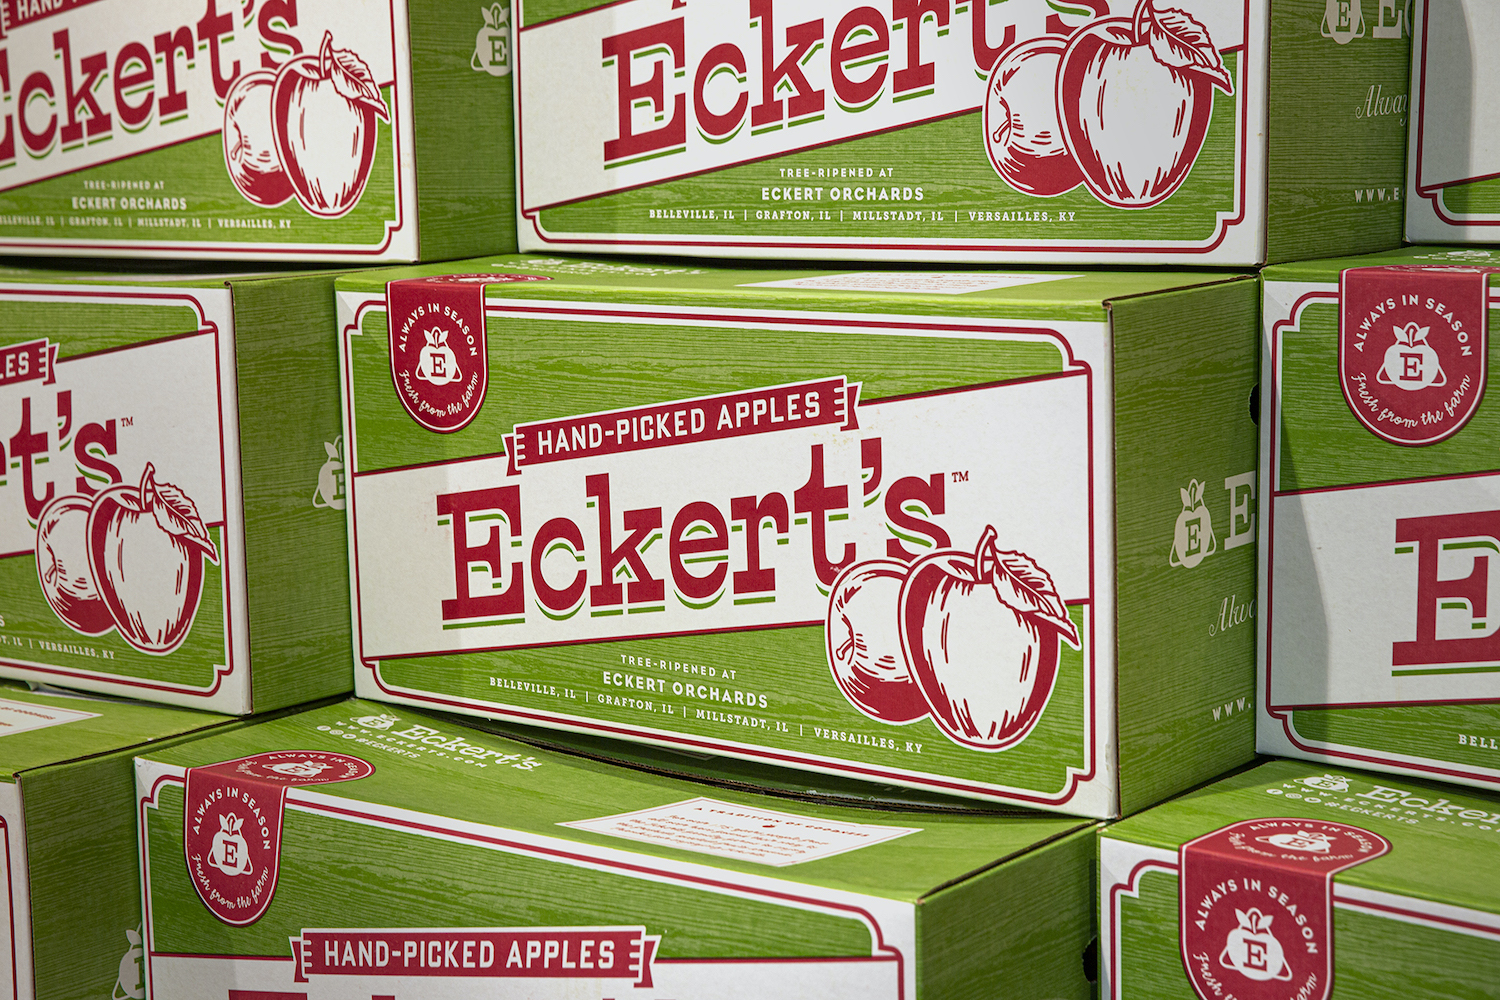 Branded apple boxes for Eckert's Farms